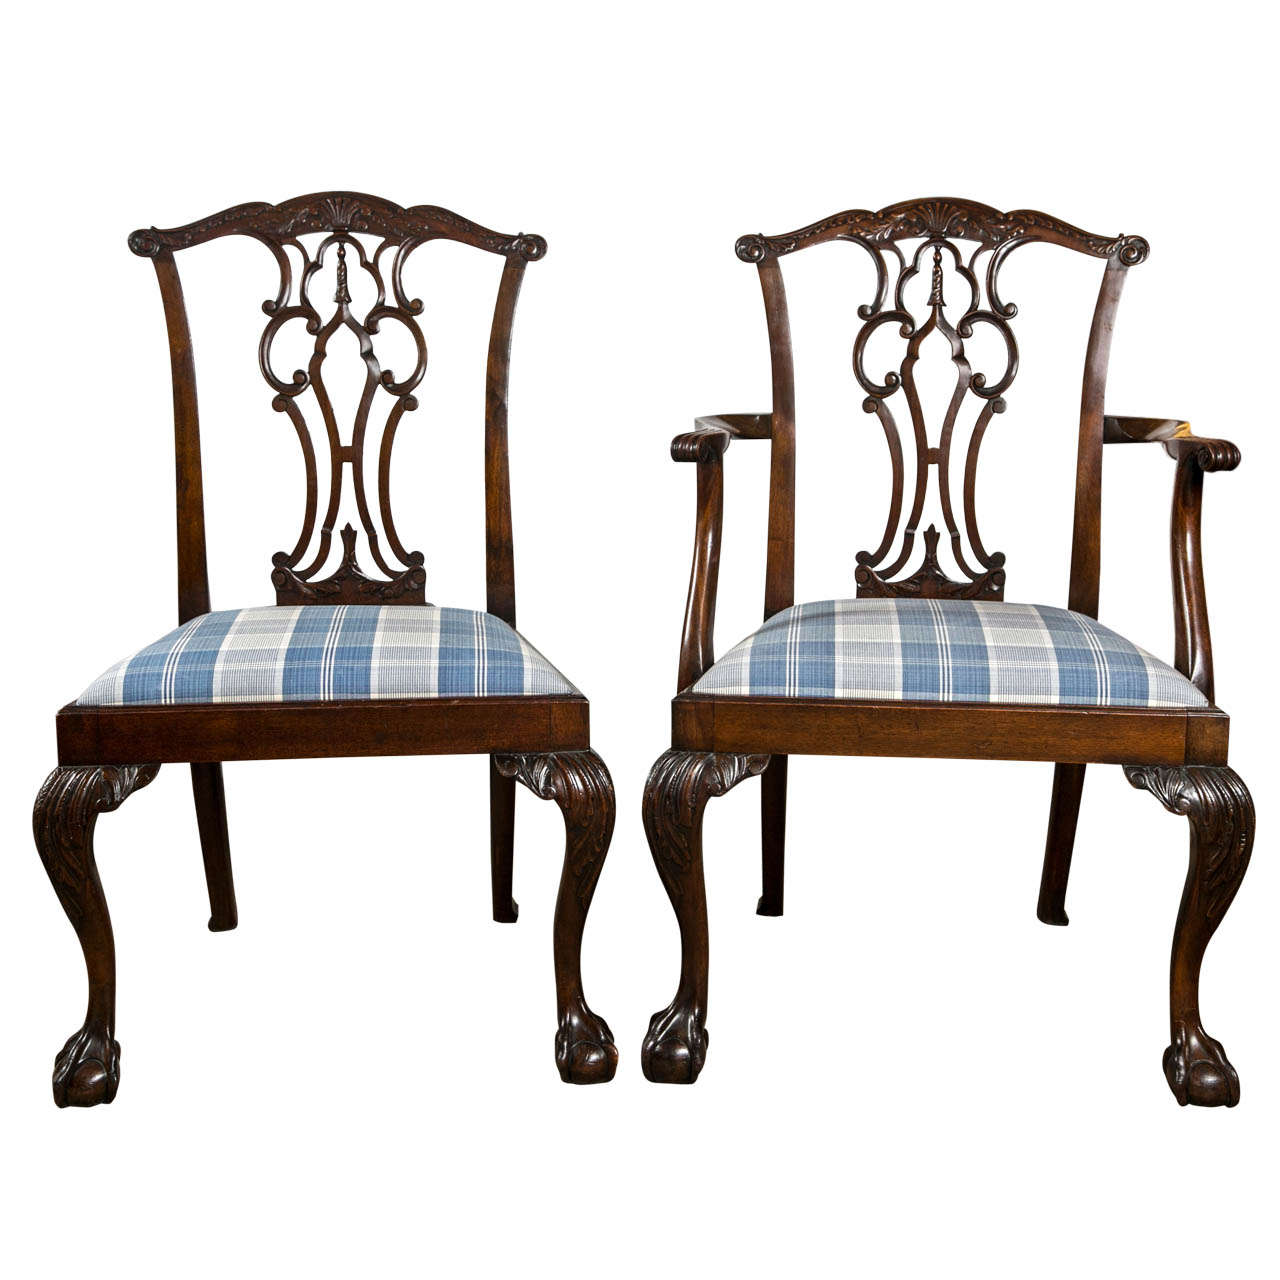 Chippendale Dining Room Chairs: Set Of Eight Chippendale Dining Chairs With Ball And Claw